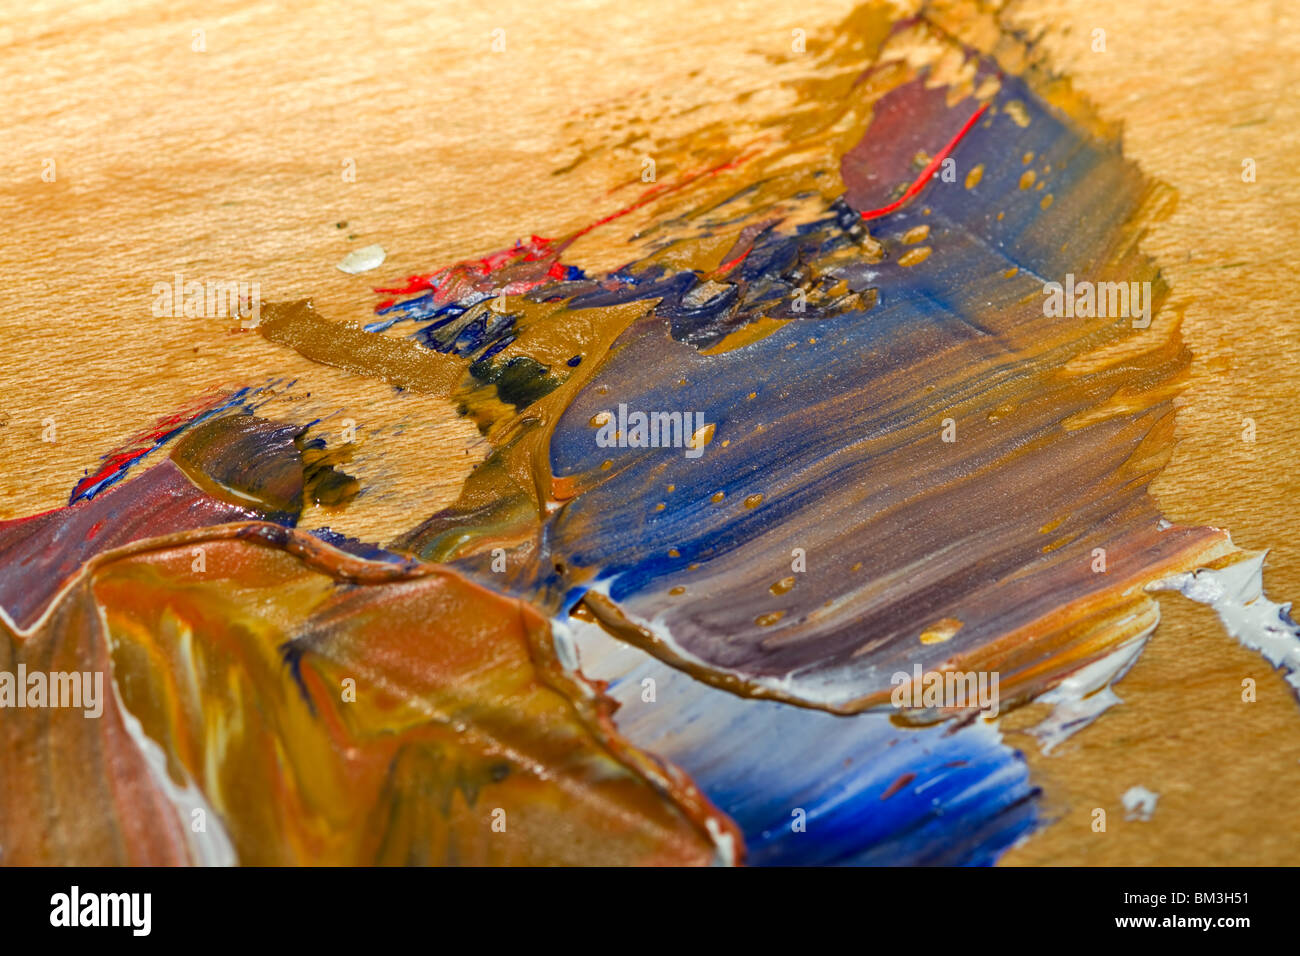 Smeared paint on a wooden palette - Stock Image